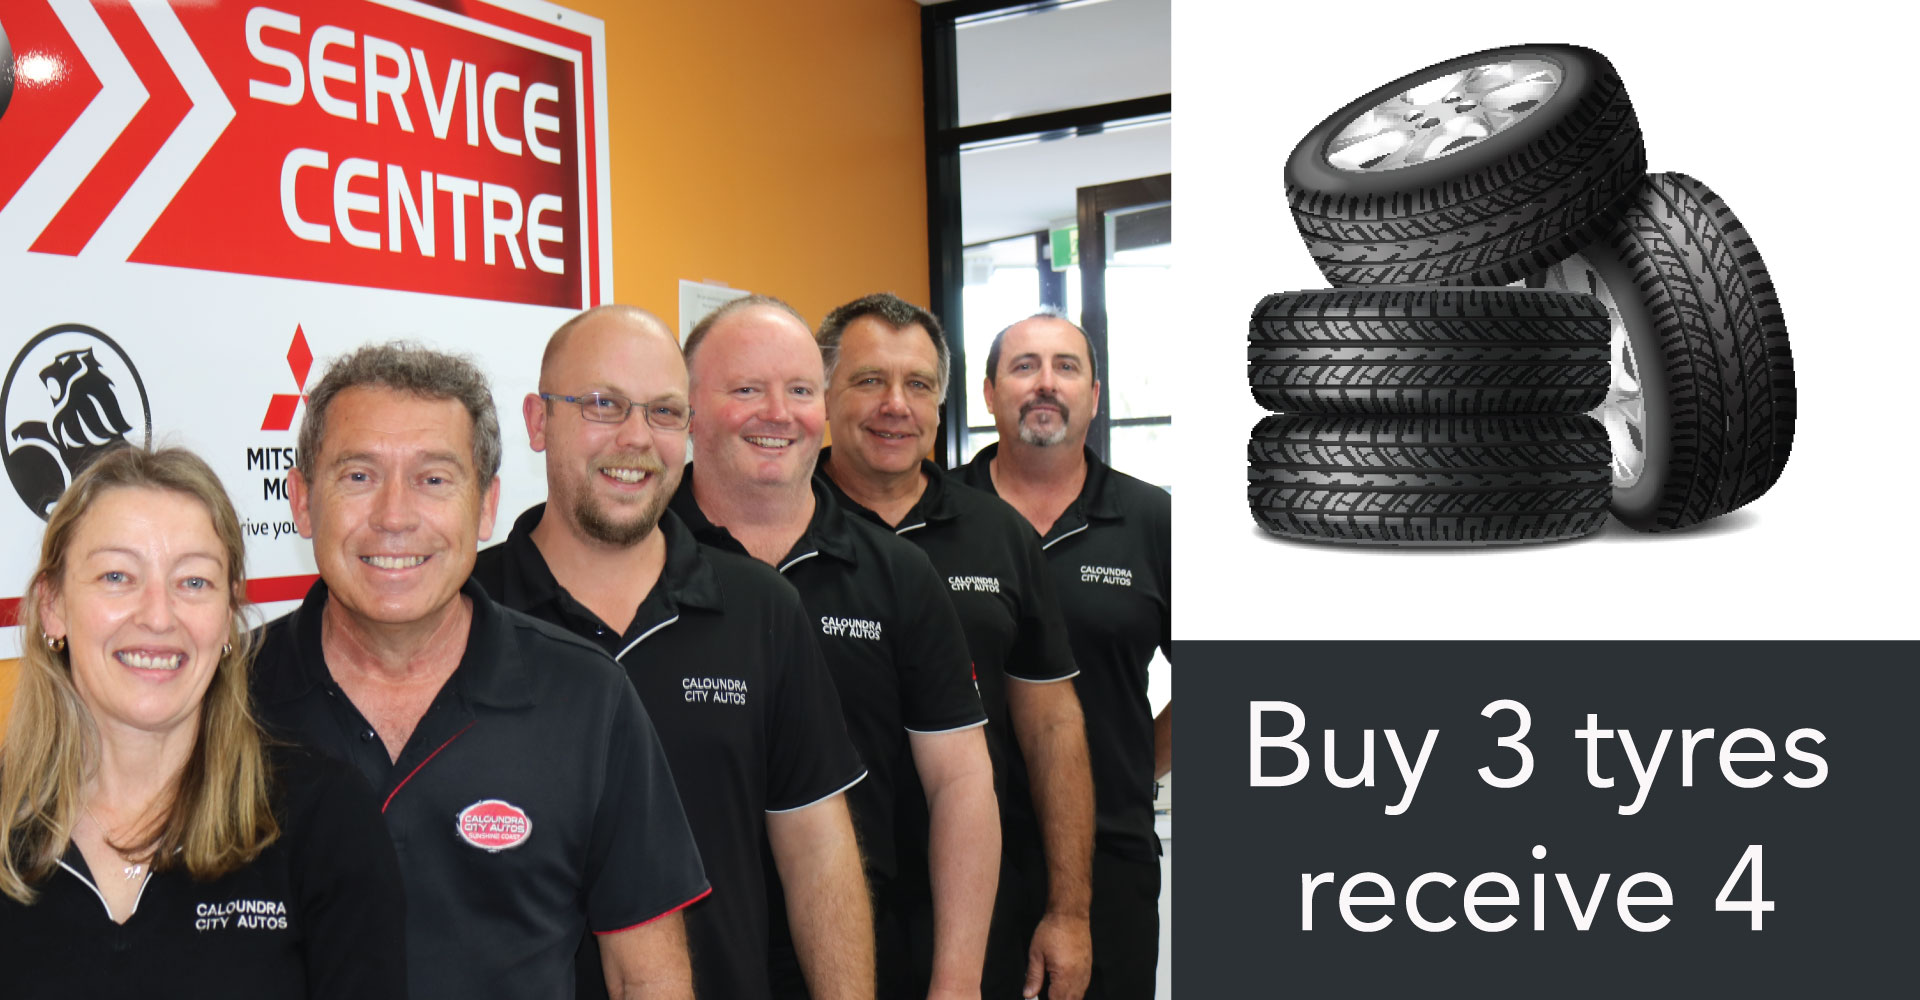 BUY 4 PAY FOR 3 TYRES*